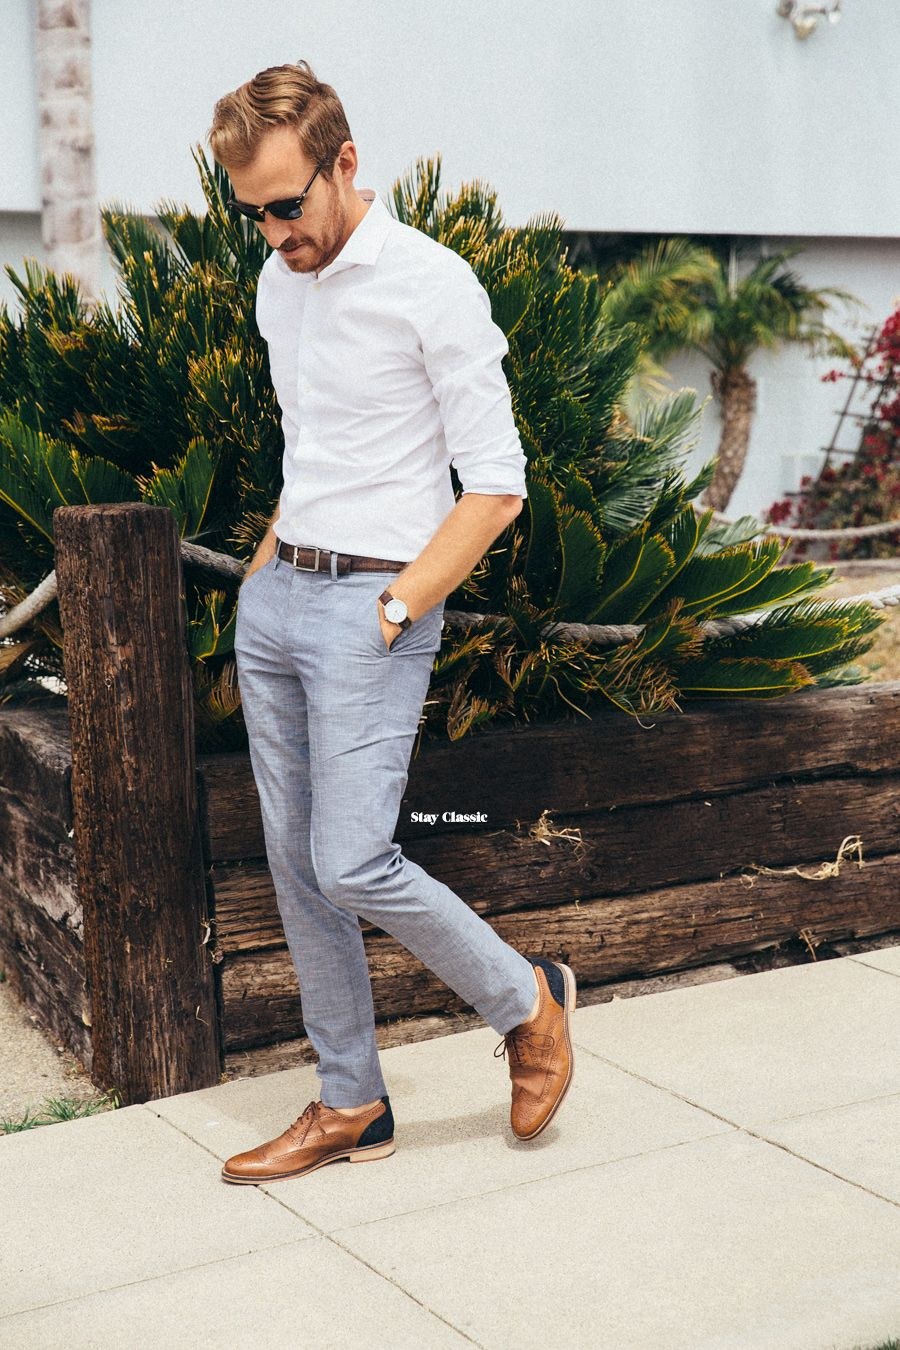 Shirting With Express Stay Classic Mens White Dress Shirt Grey Dress Pants Outfit Mens Casual Outfits [ 1350 x 900 Pixel ]